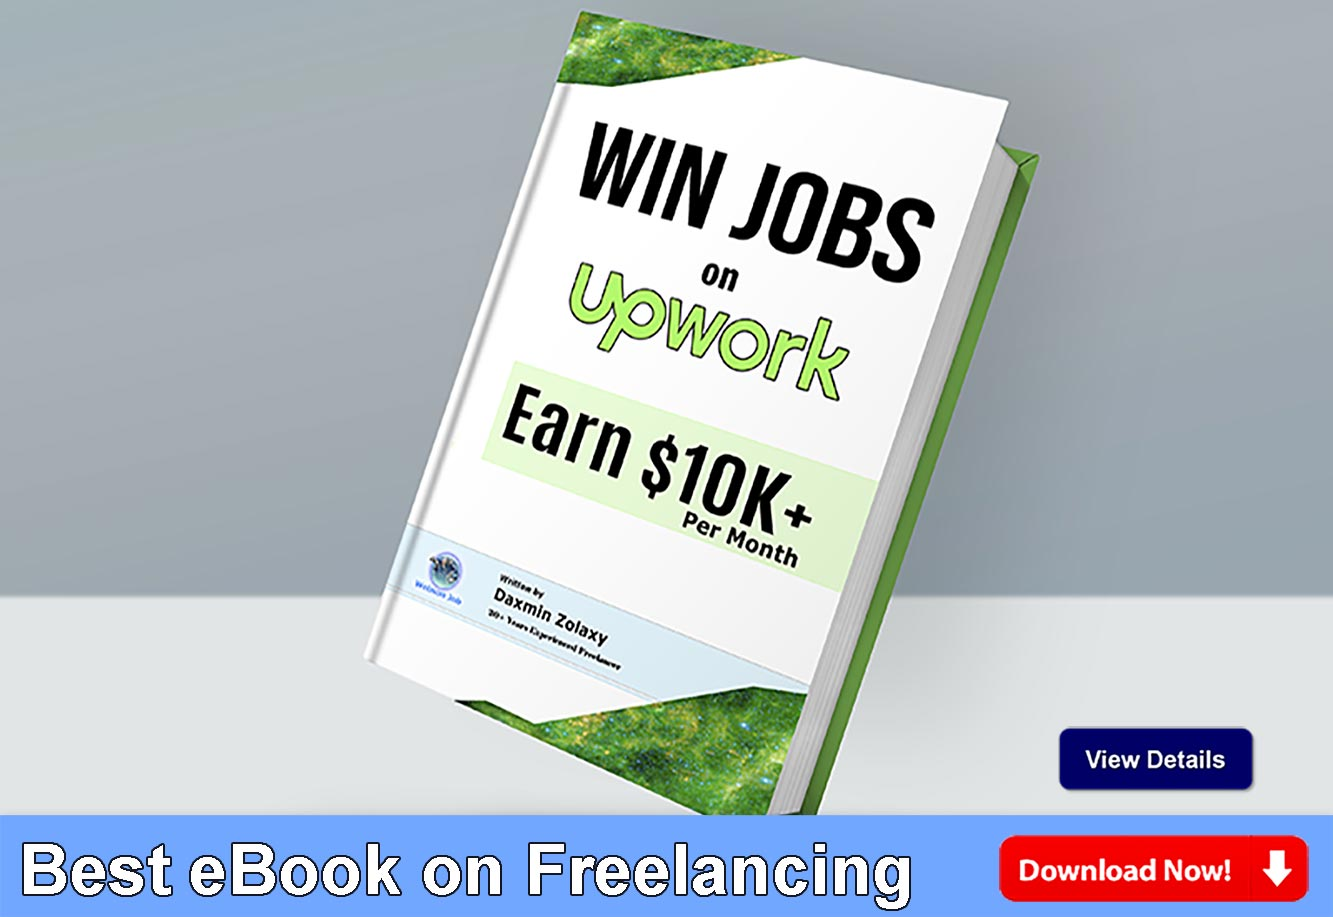 Win Jobs on Upwork